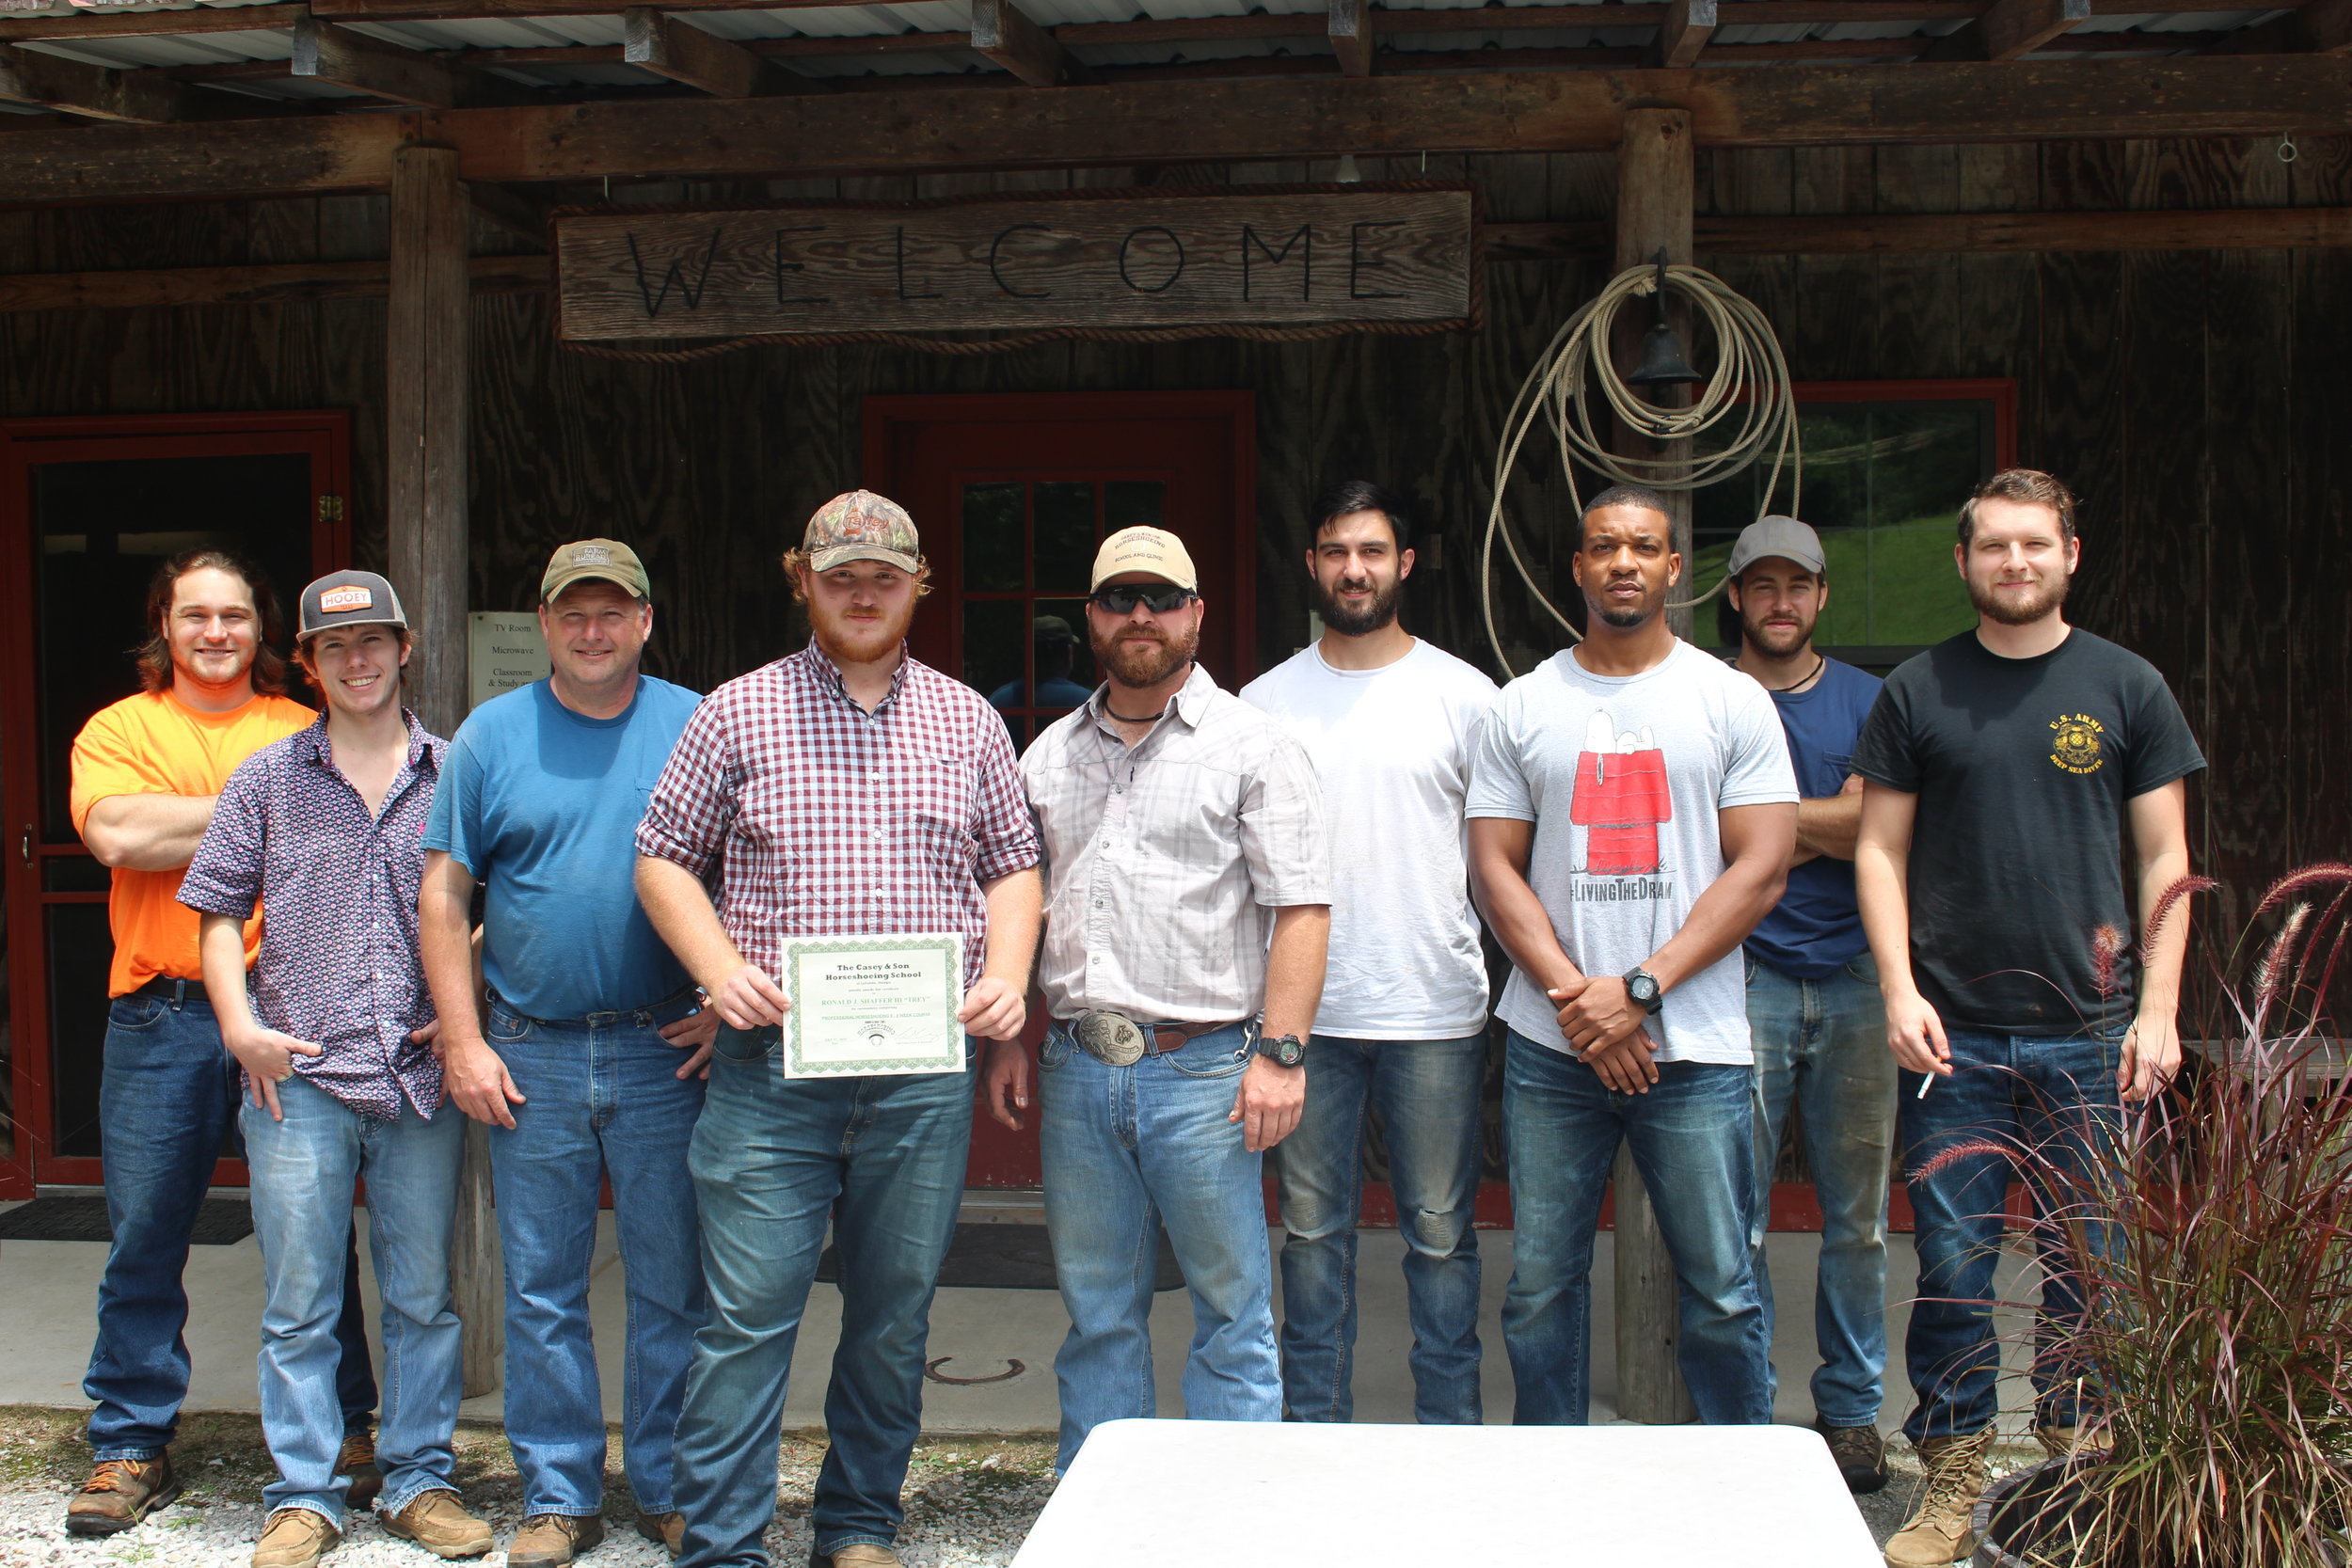 Farrier Graduate of Casey & Son Horseshoeing School Trey Shaffer, with fellow students & Link Casey, owner instructor.